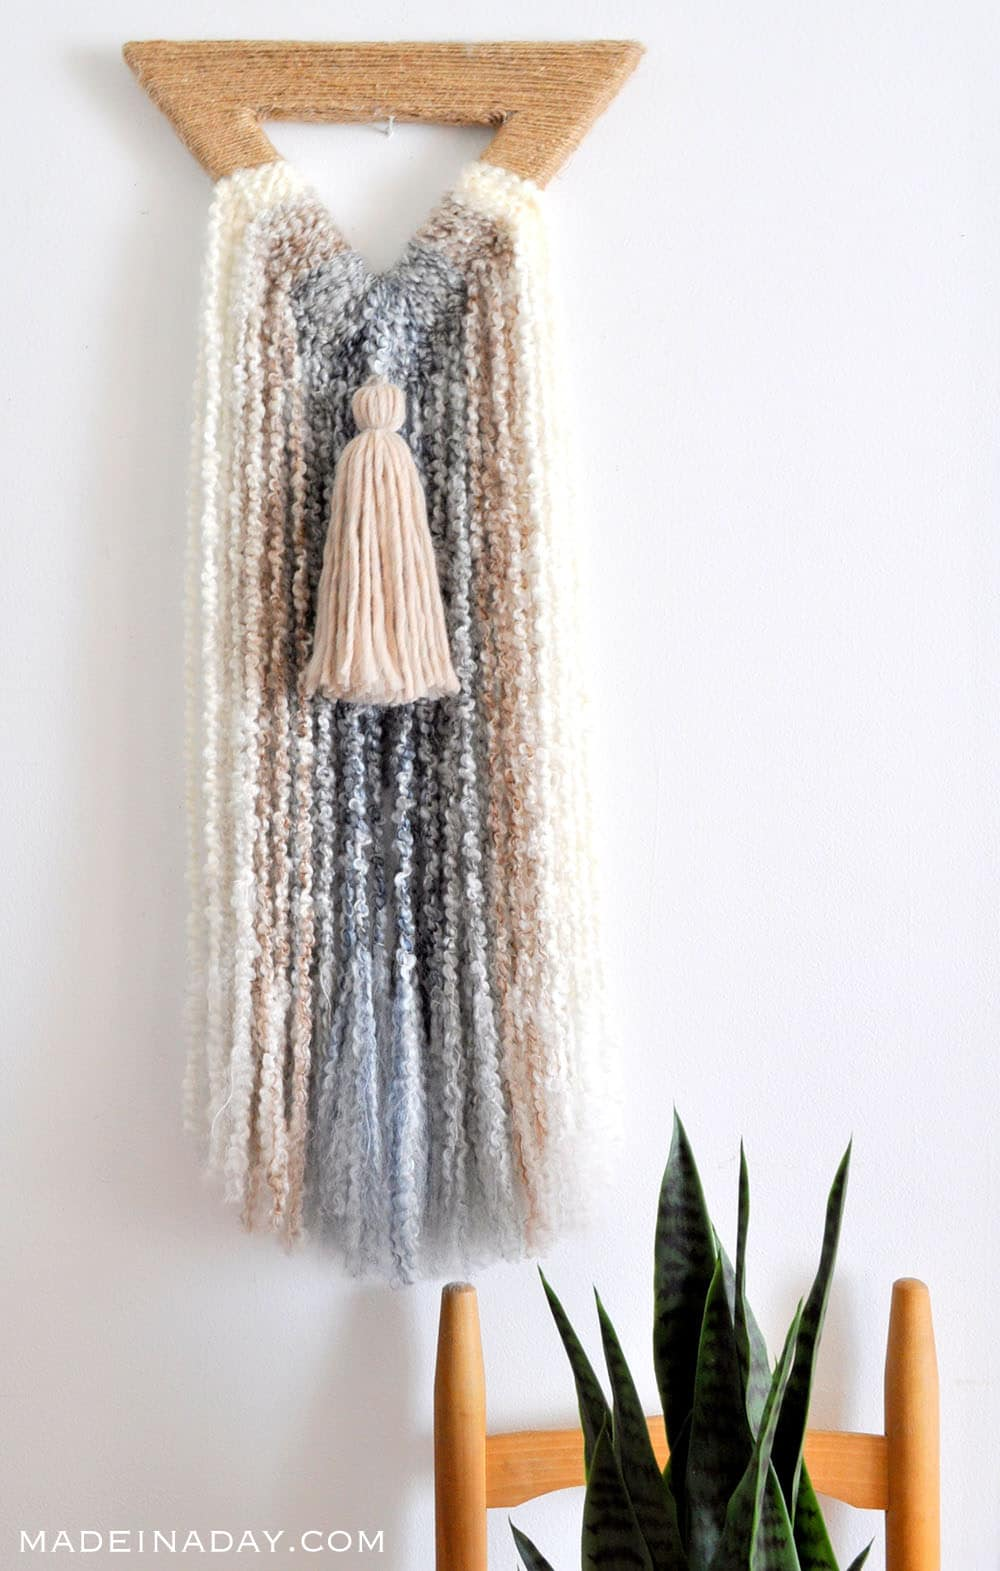 Boho Triangle Fringe Wall Art, Easy DIY Wall Hanging Macrame boucle yarn, bohemian fringe, ombre yarn #ombre #bohowallart #wallart